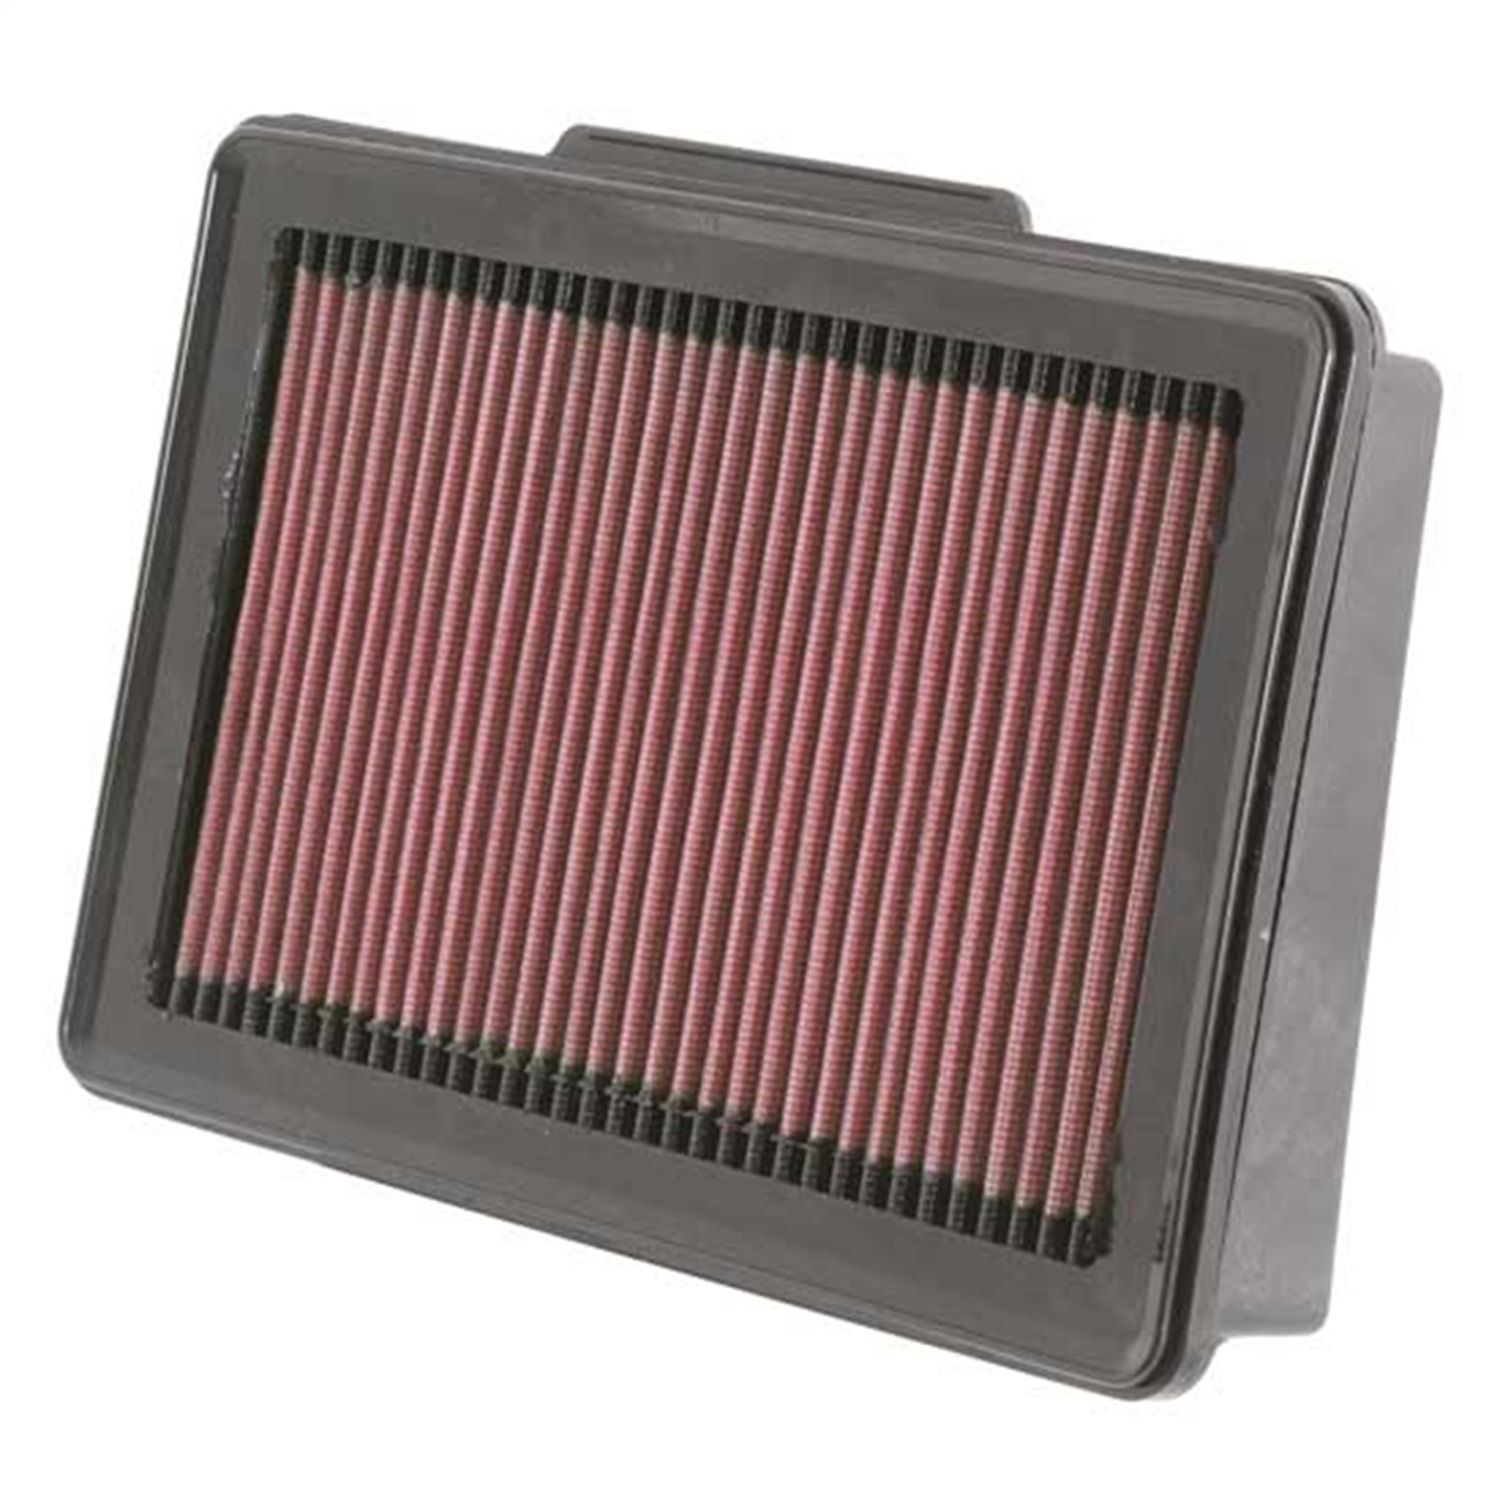 K&N Filters 33-2397 Air Filter Fits 06-08 M35 33-2397